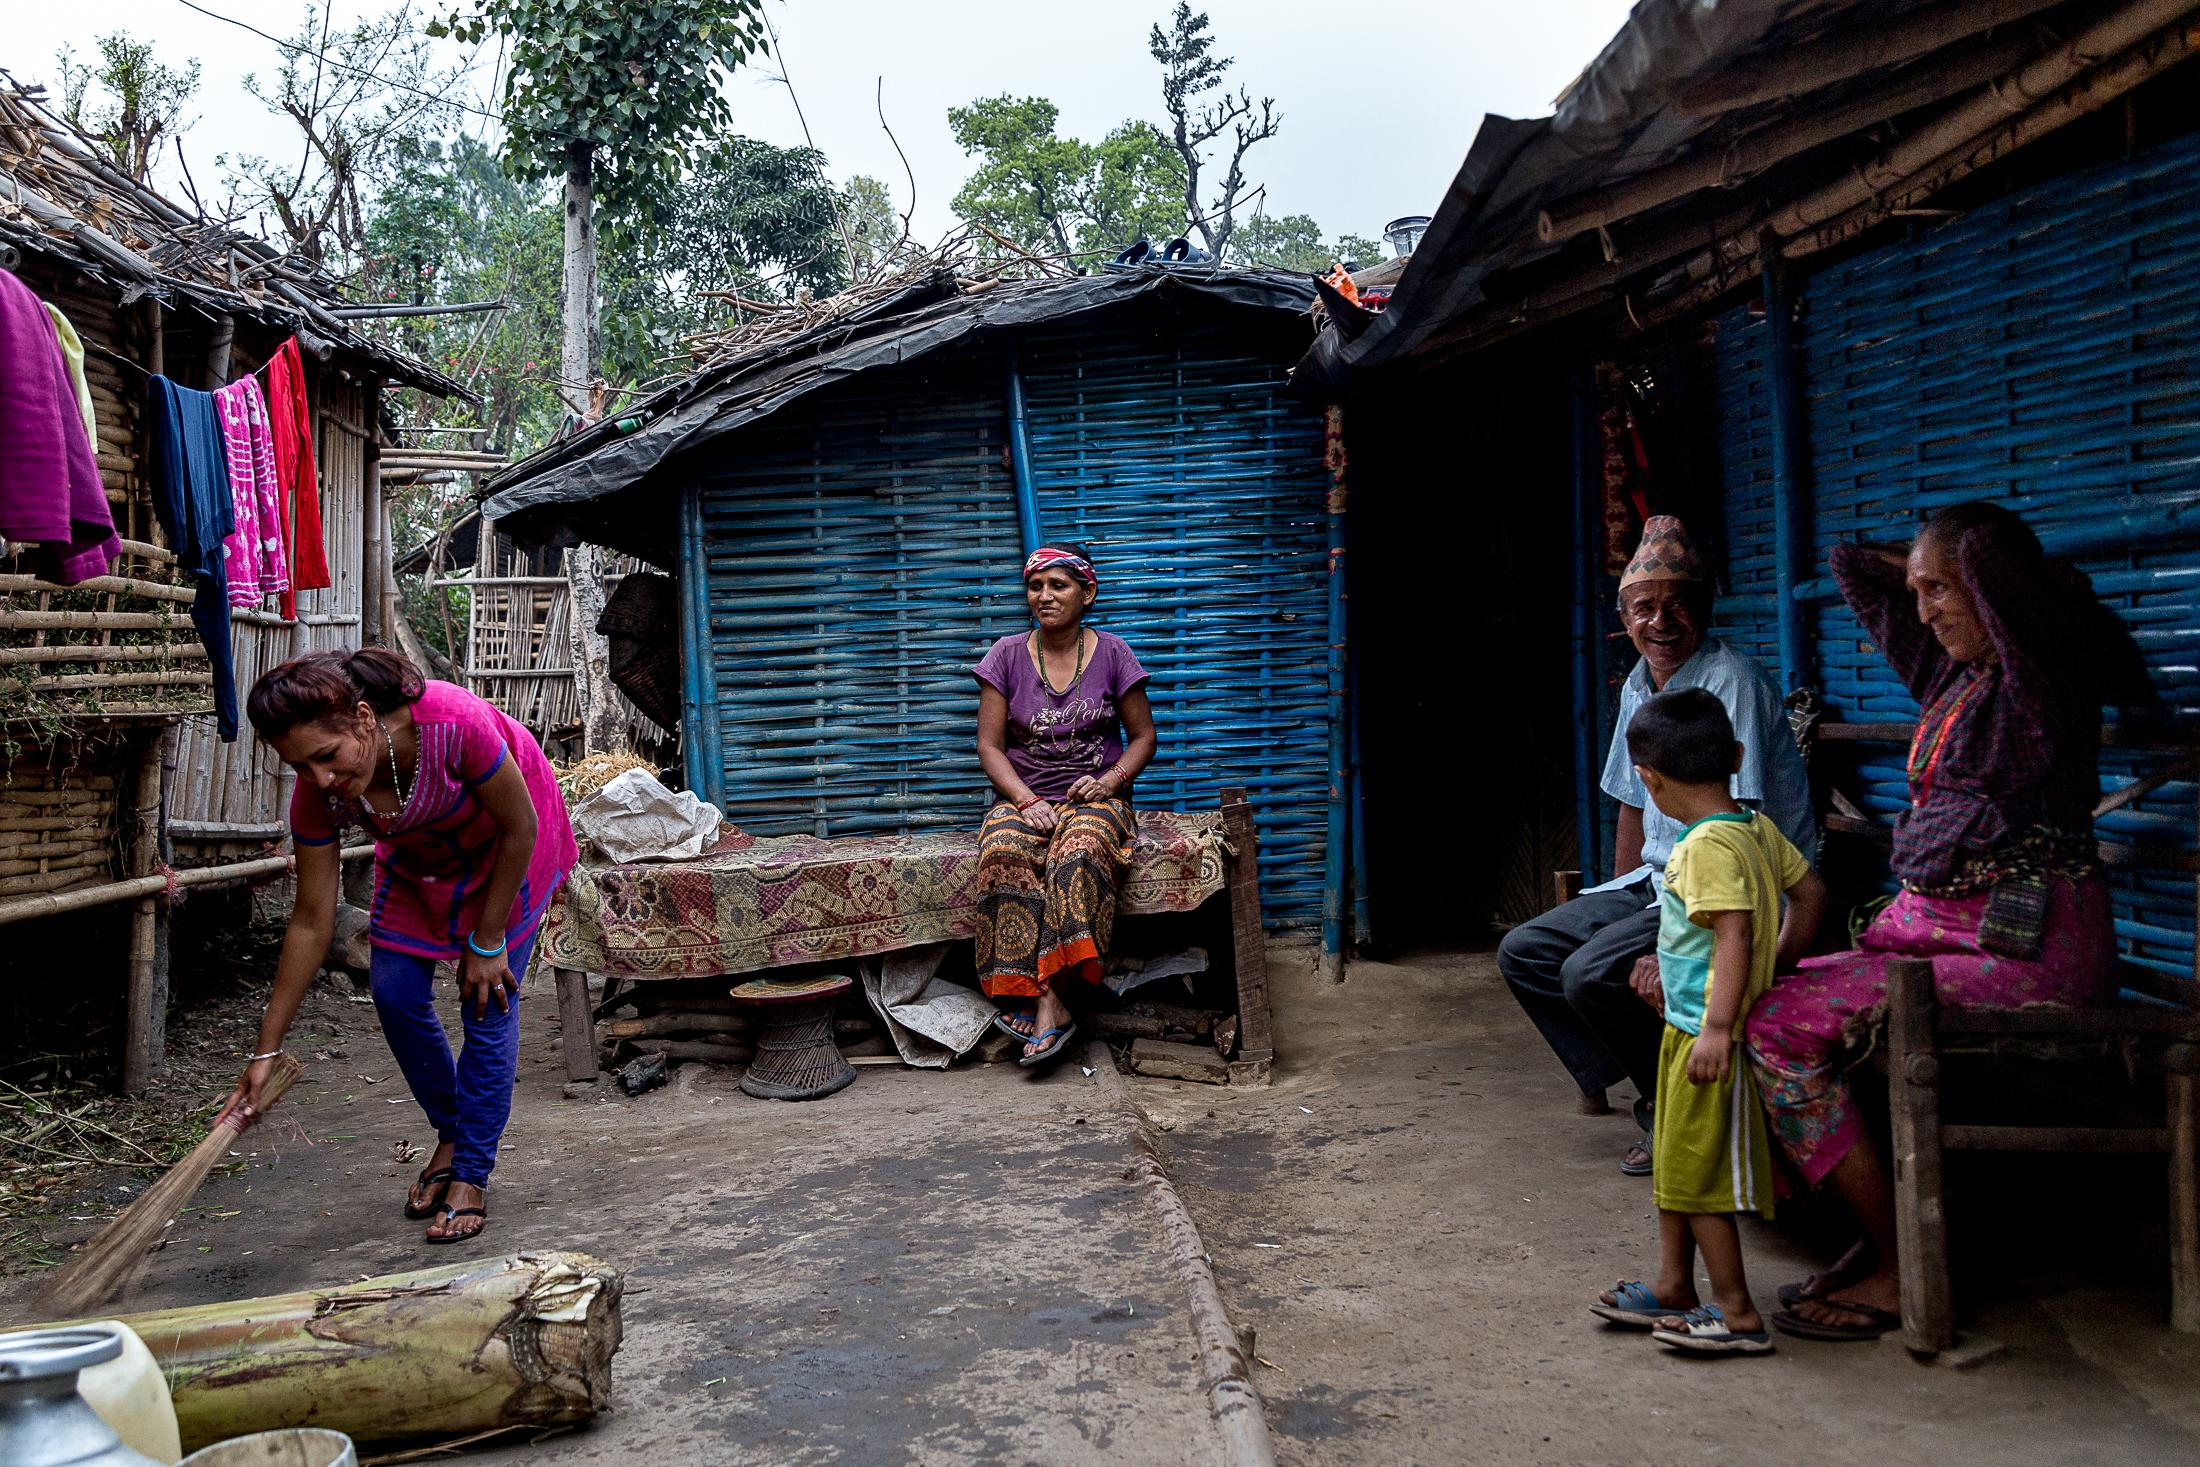 BELDANGI, NEPAL - MARCH 14: Refugees chat in front of their houses inside the Beldangi 2 refugee camp on March 14, 2015 in Beldangi, Nepal. Photo: © Omar Havana.